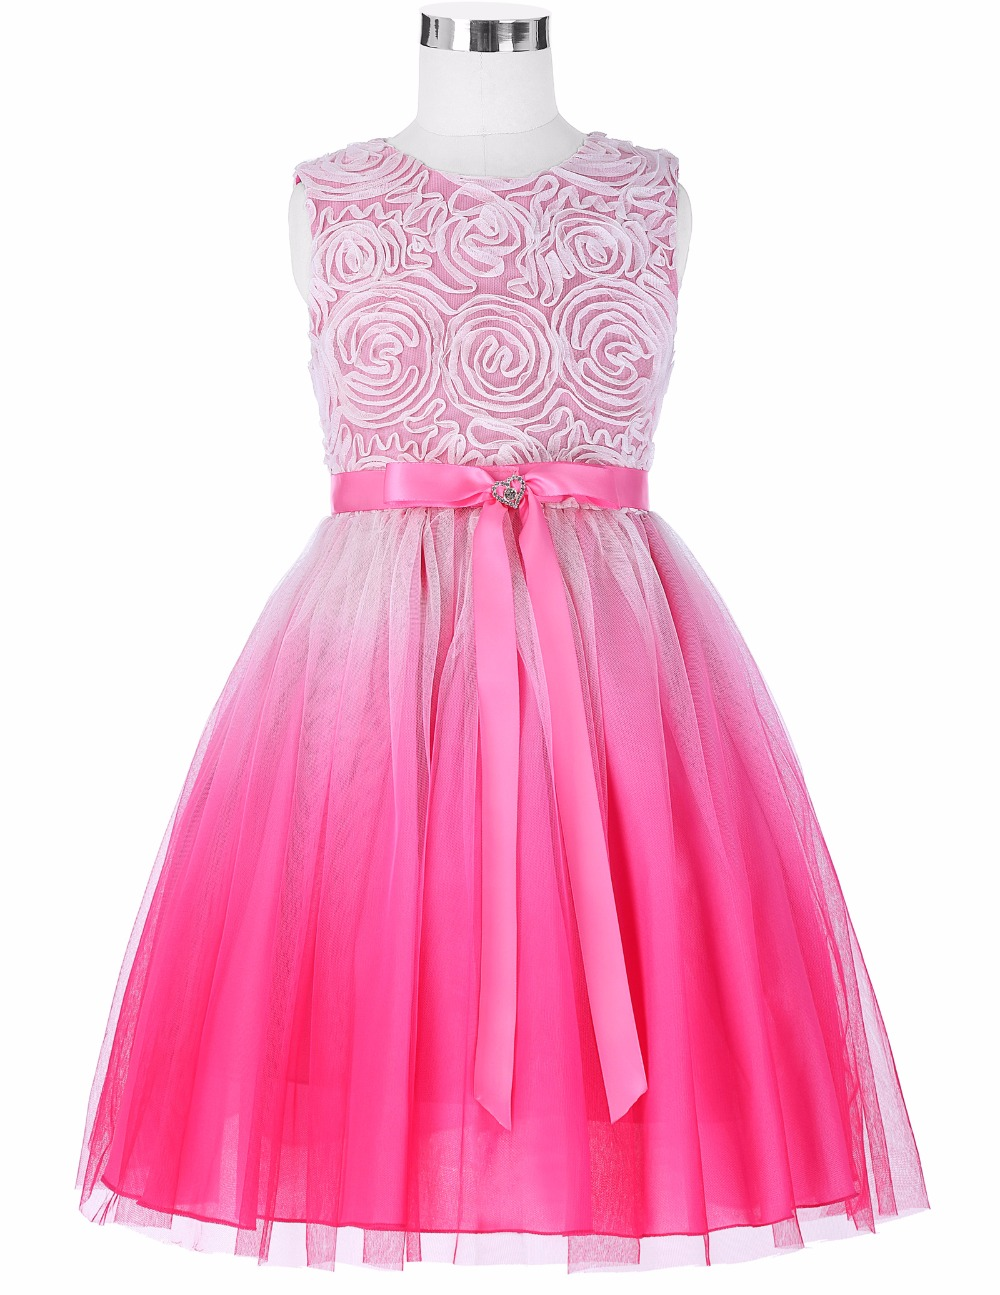 Grace Karin 2017 Flower Girl Dresses Luxury Tulle Flower Party Dresses For Wedding Party First Communion Dresses With Bow Ribbon 5